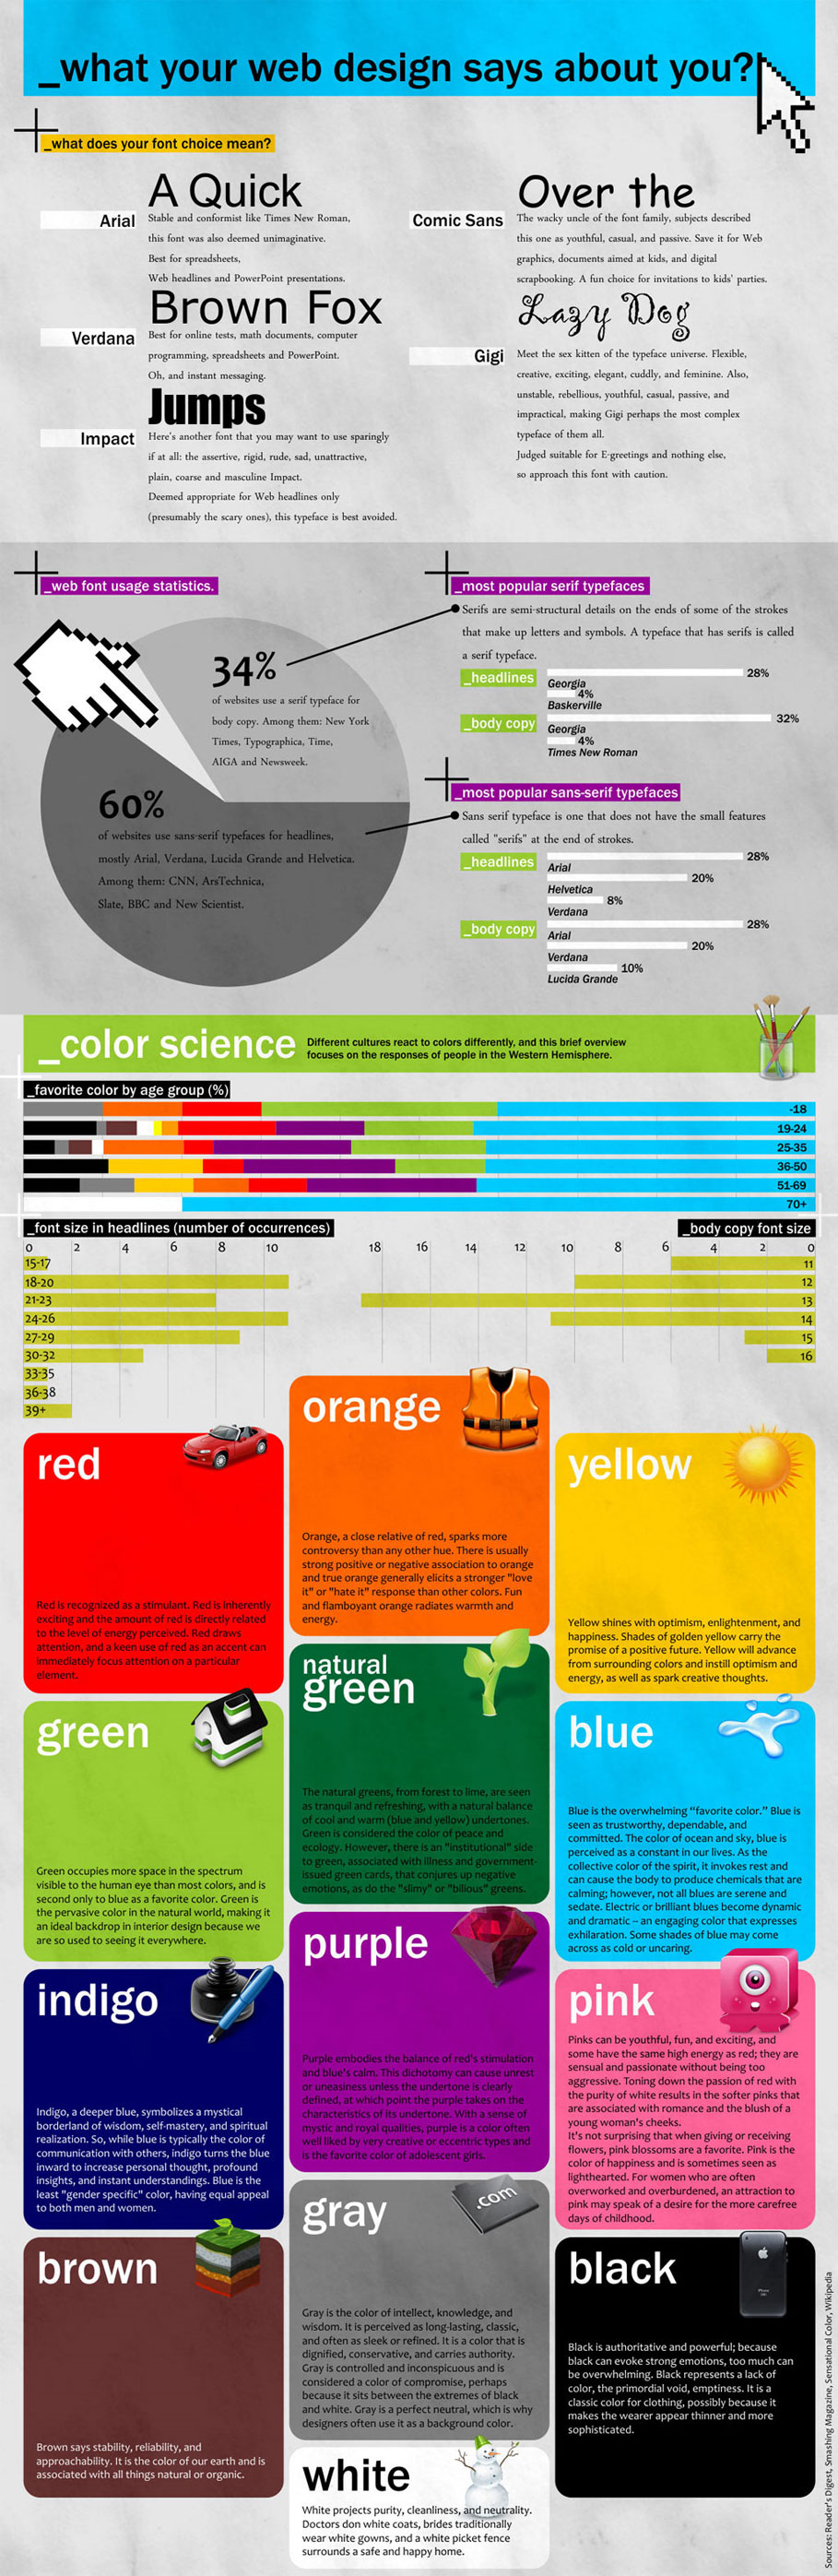 Infographic - What Your Web Design Says About You